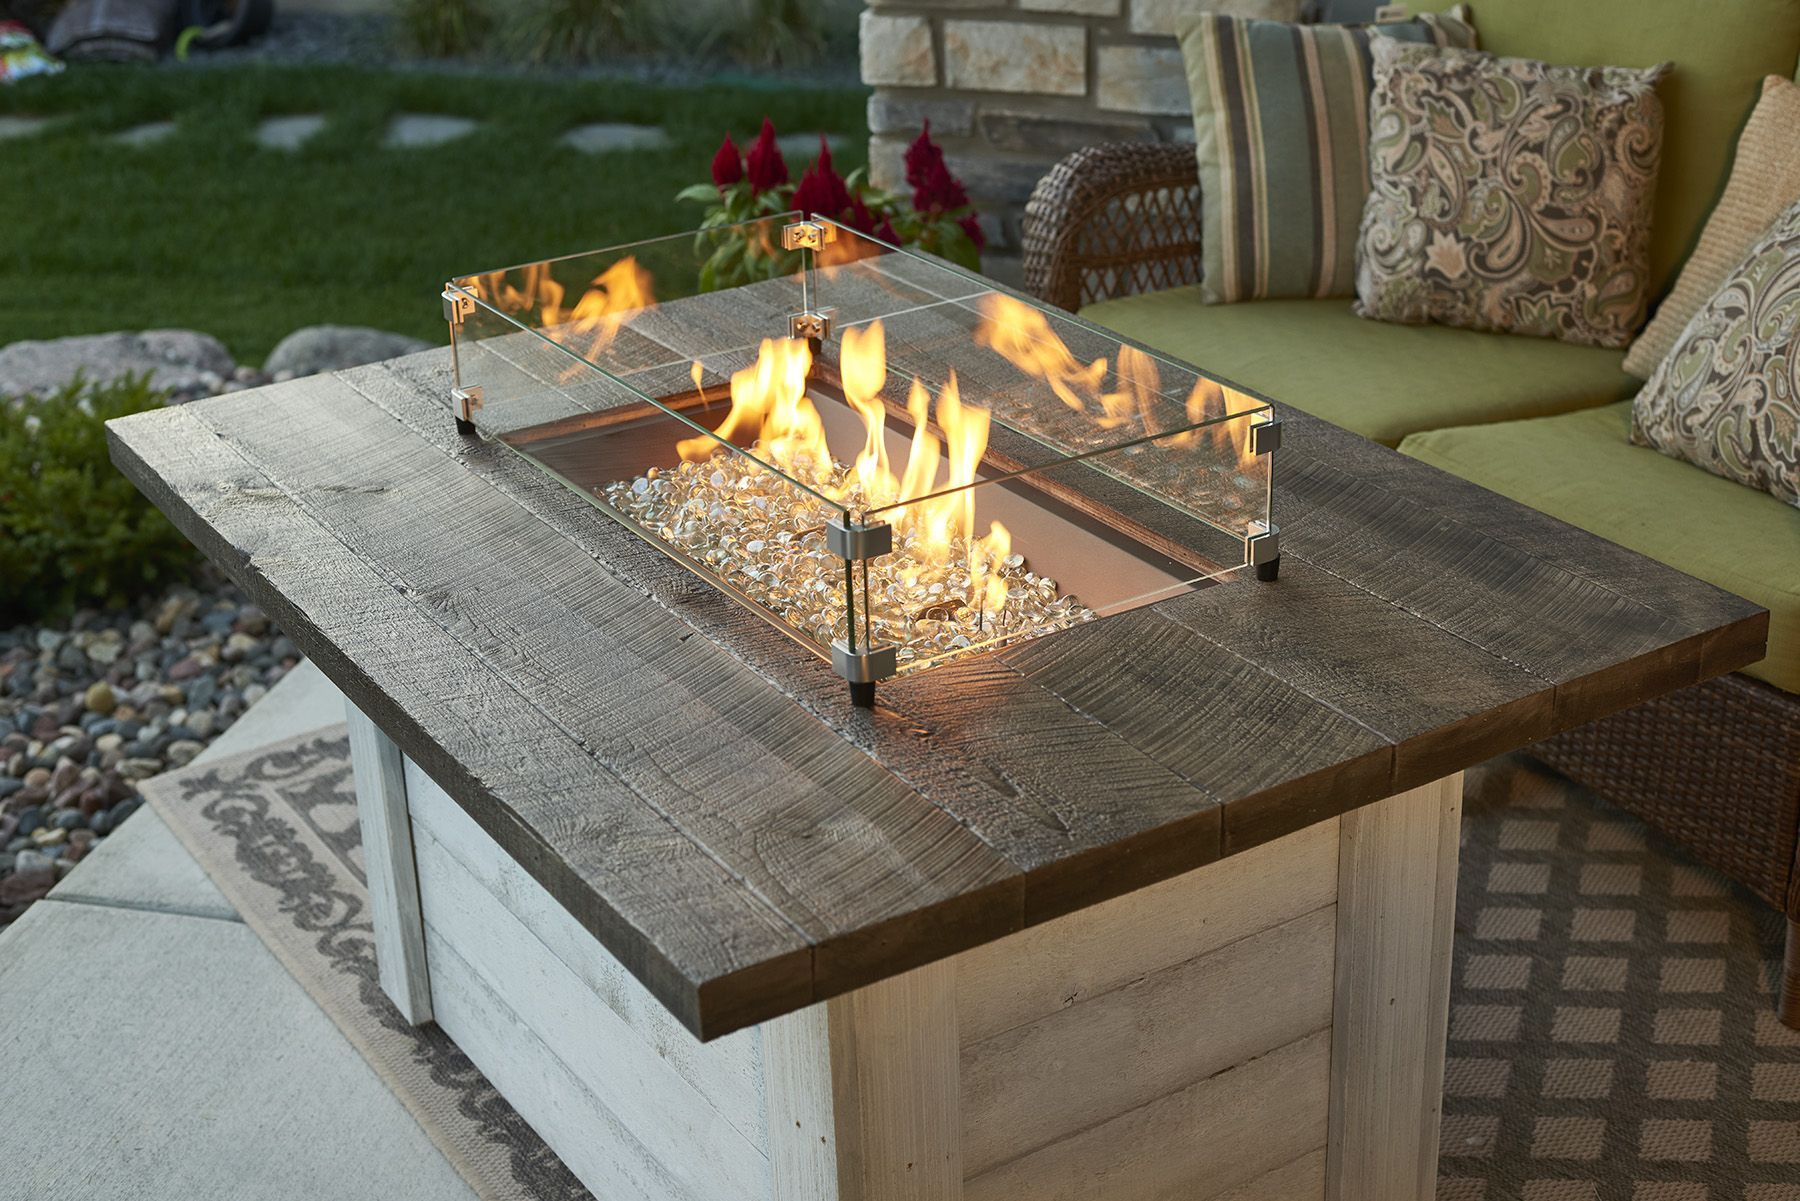 Alcott Fire Pit Table A Gorgeous Fire Table With A Stunning Flame Beautiful And Functional Trellisfi Outdoor Fire Table Natural Gas Fire Pit Fire Pit Table